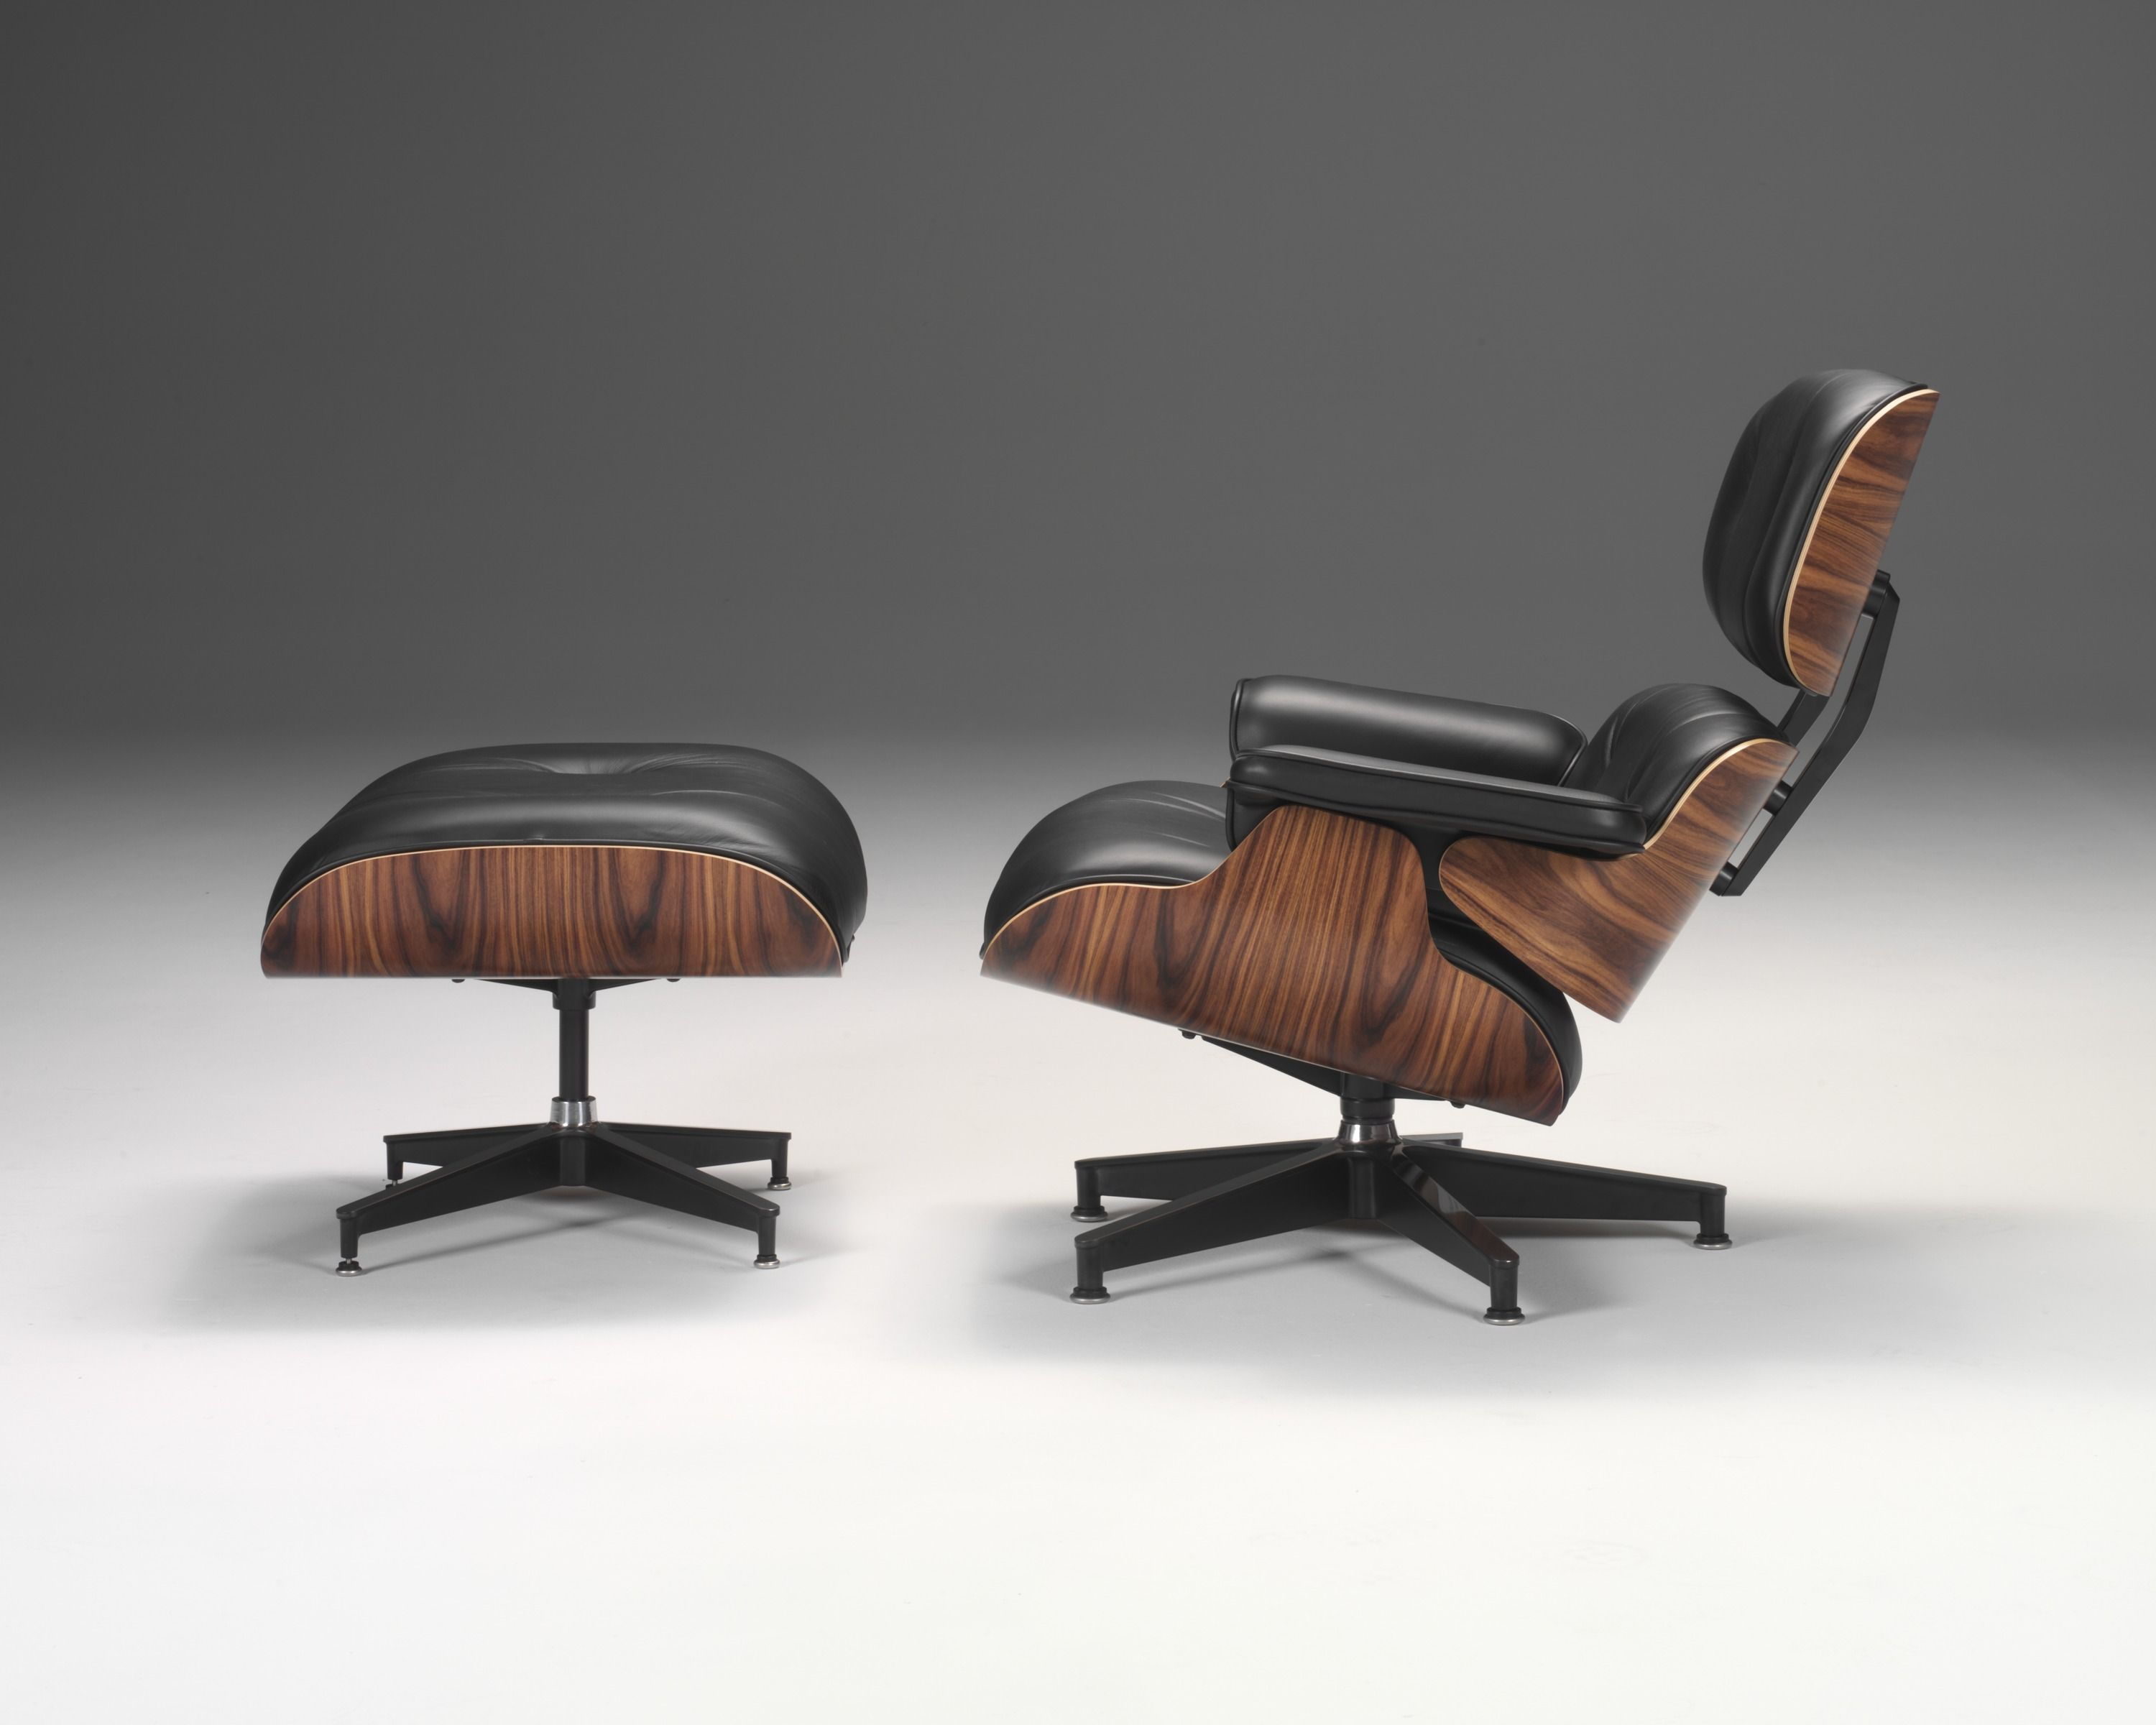 magnificent original eames lounge chair and ottoman and authentic